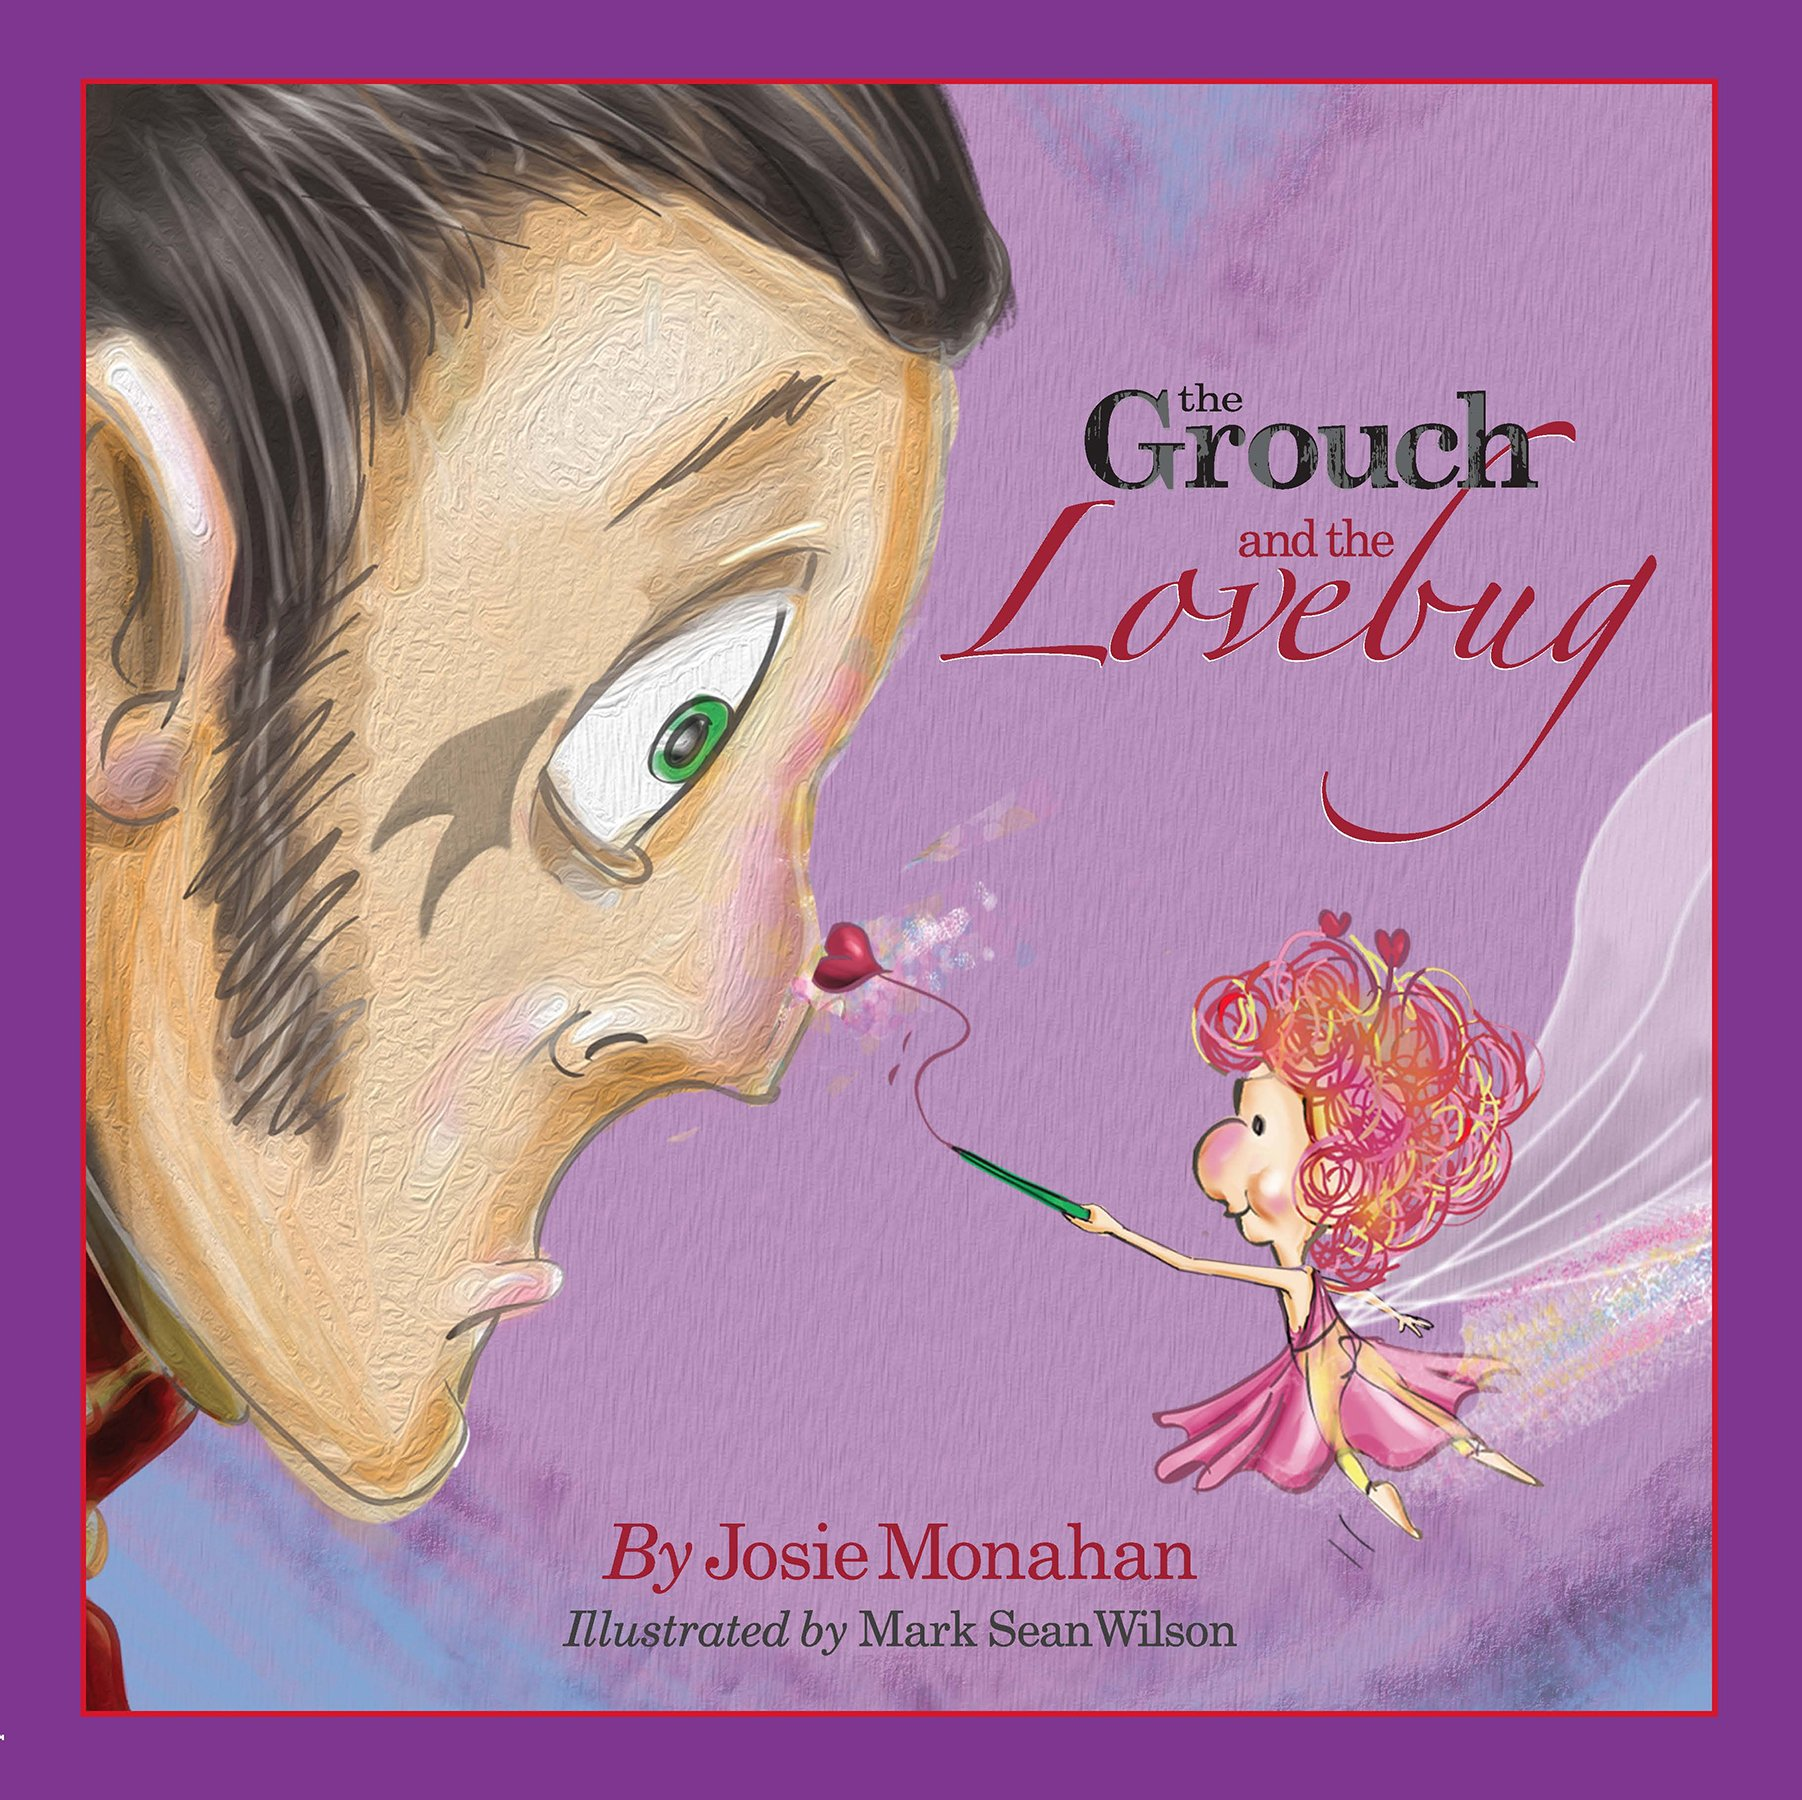 Download The Grouch and the Lovebug ebook